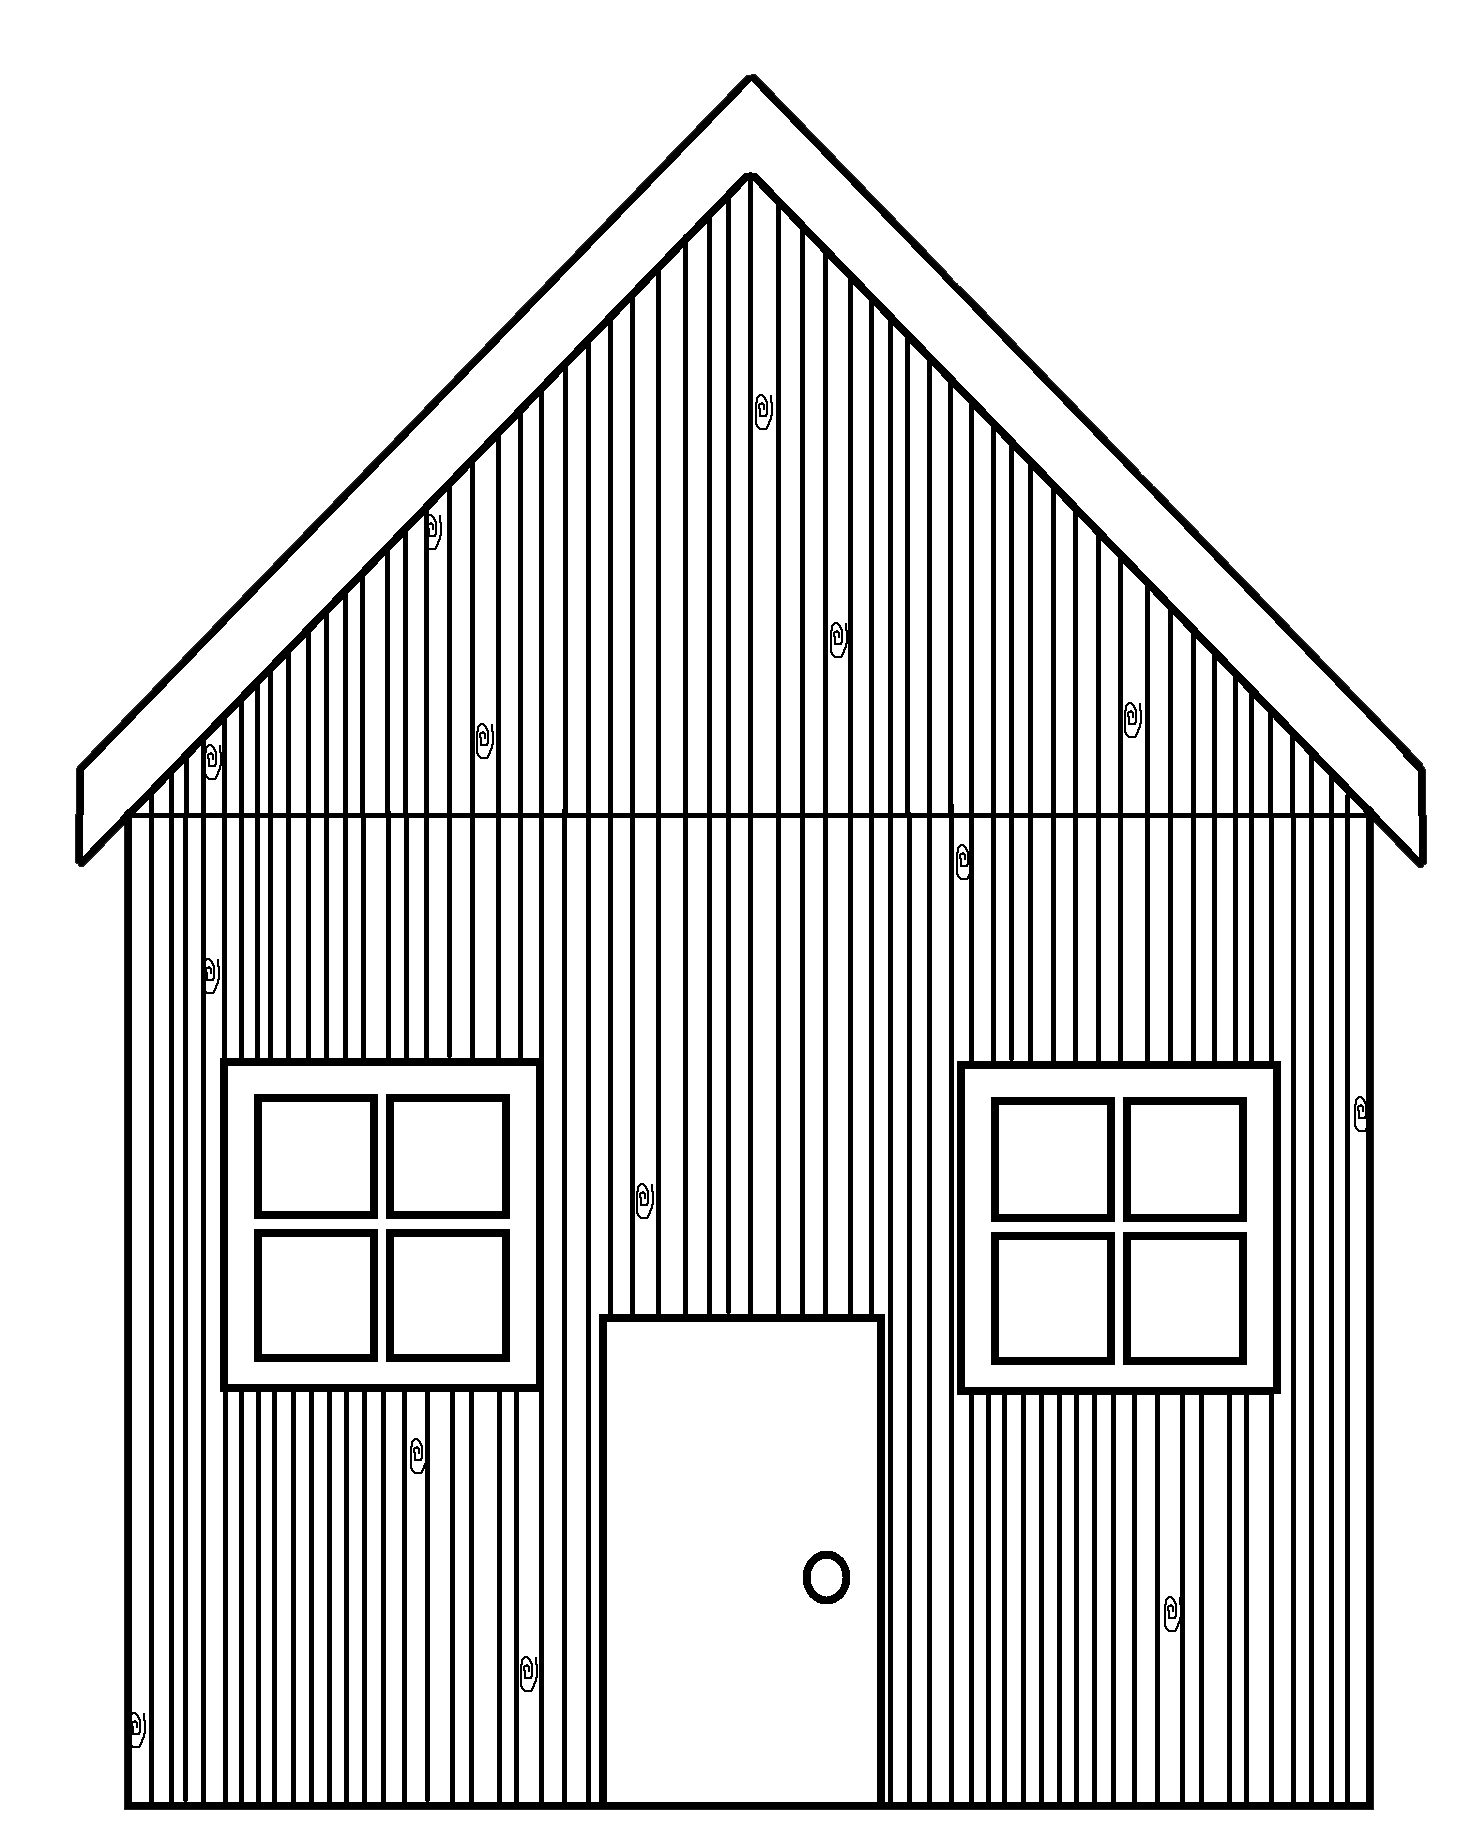 Three little pigs brick house clipart black and white vector freeuse download Graphics by Ruth - 3 Little Pigs | huizen bouwen | Pinterest ... vector freeuse download